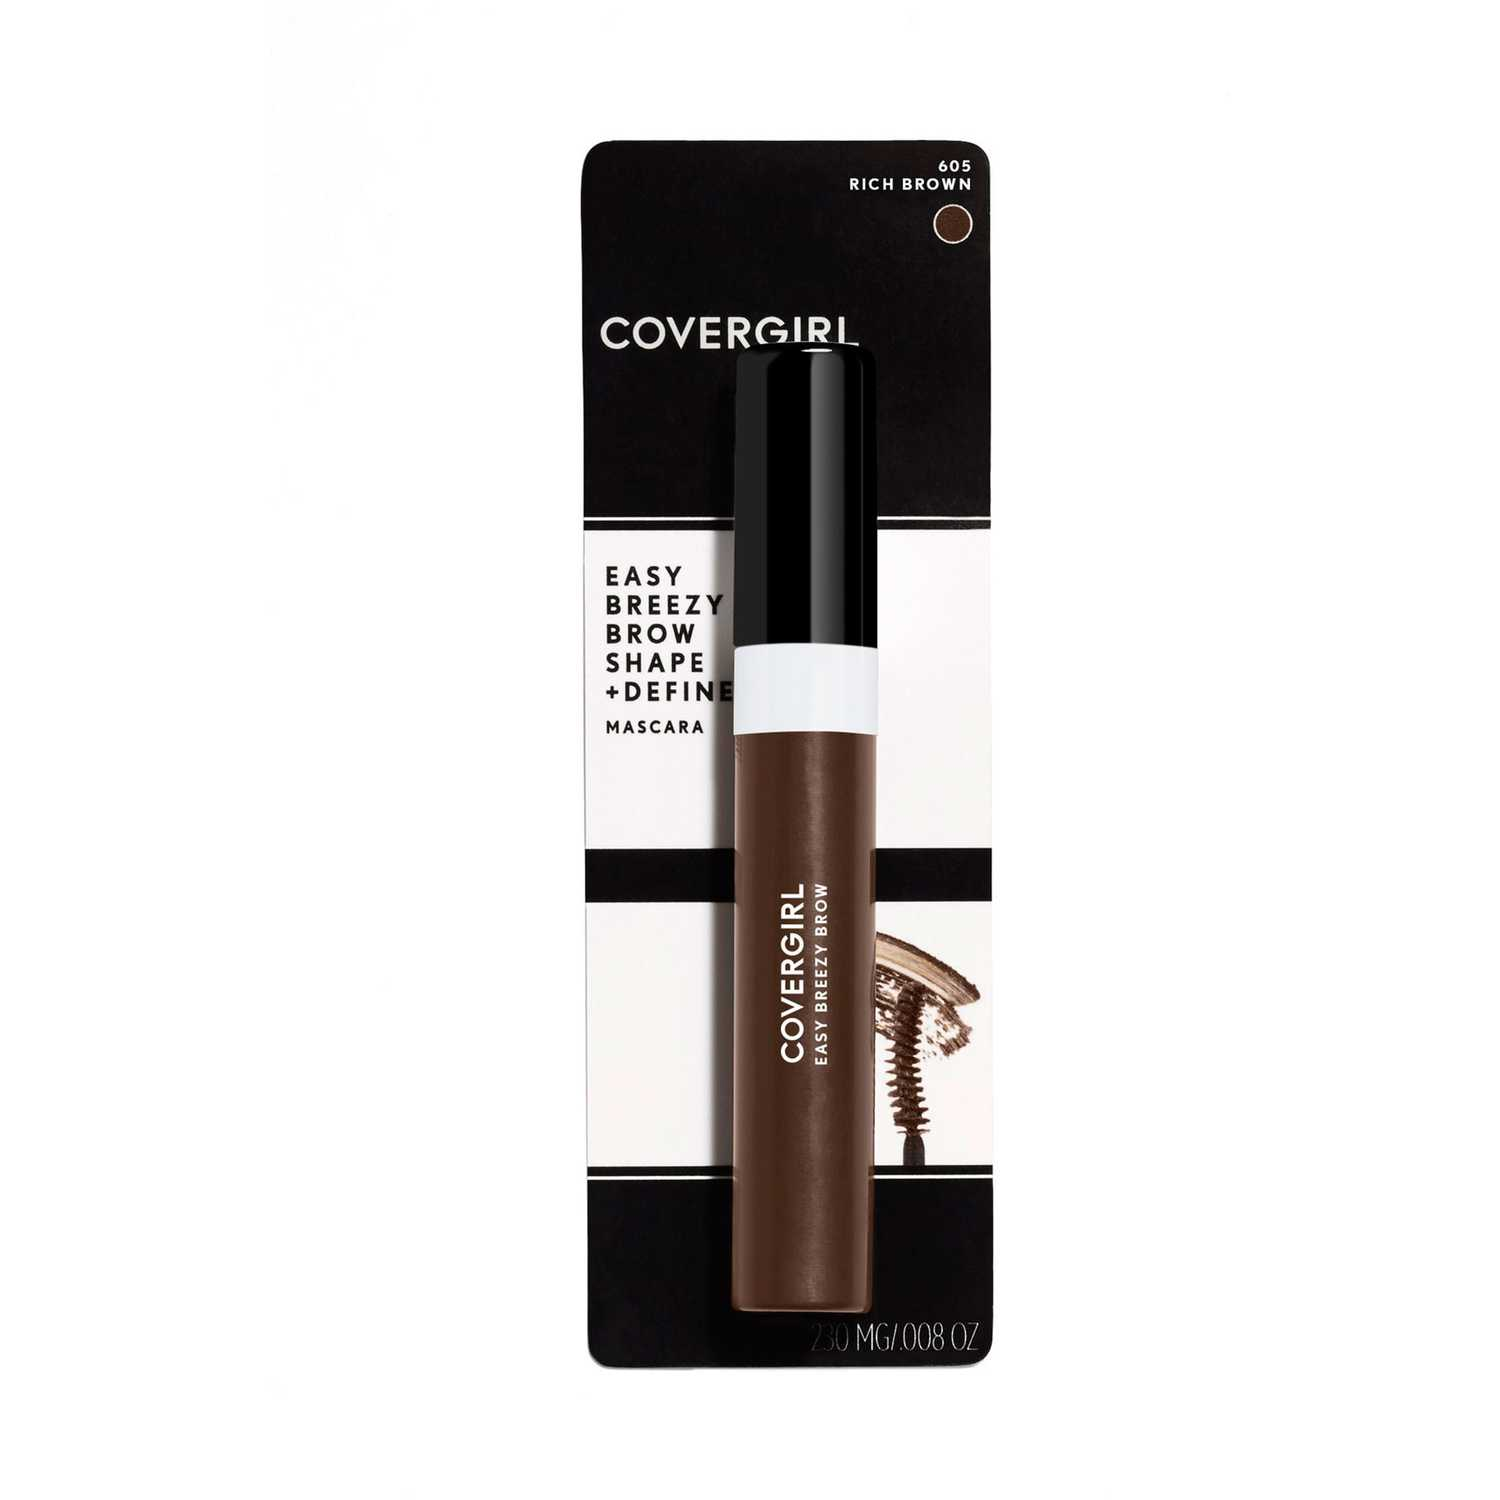 Máscara para cejas  Covergirl Rich Brown brow shape&define brow mascara